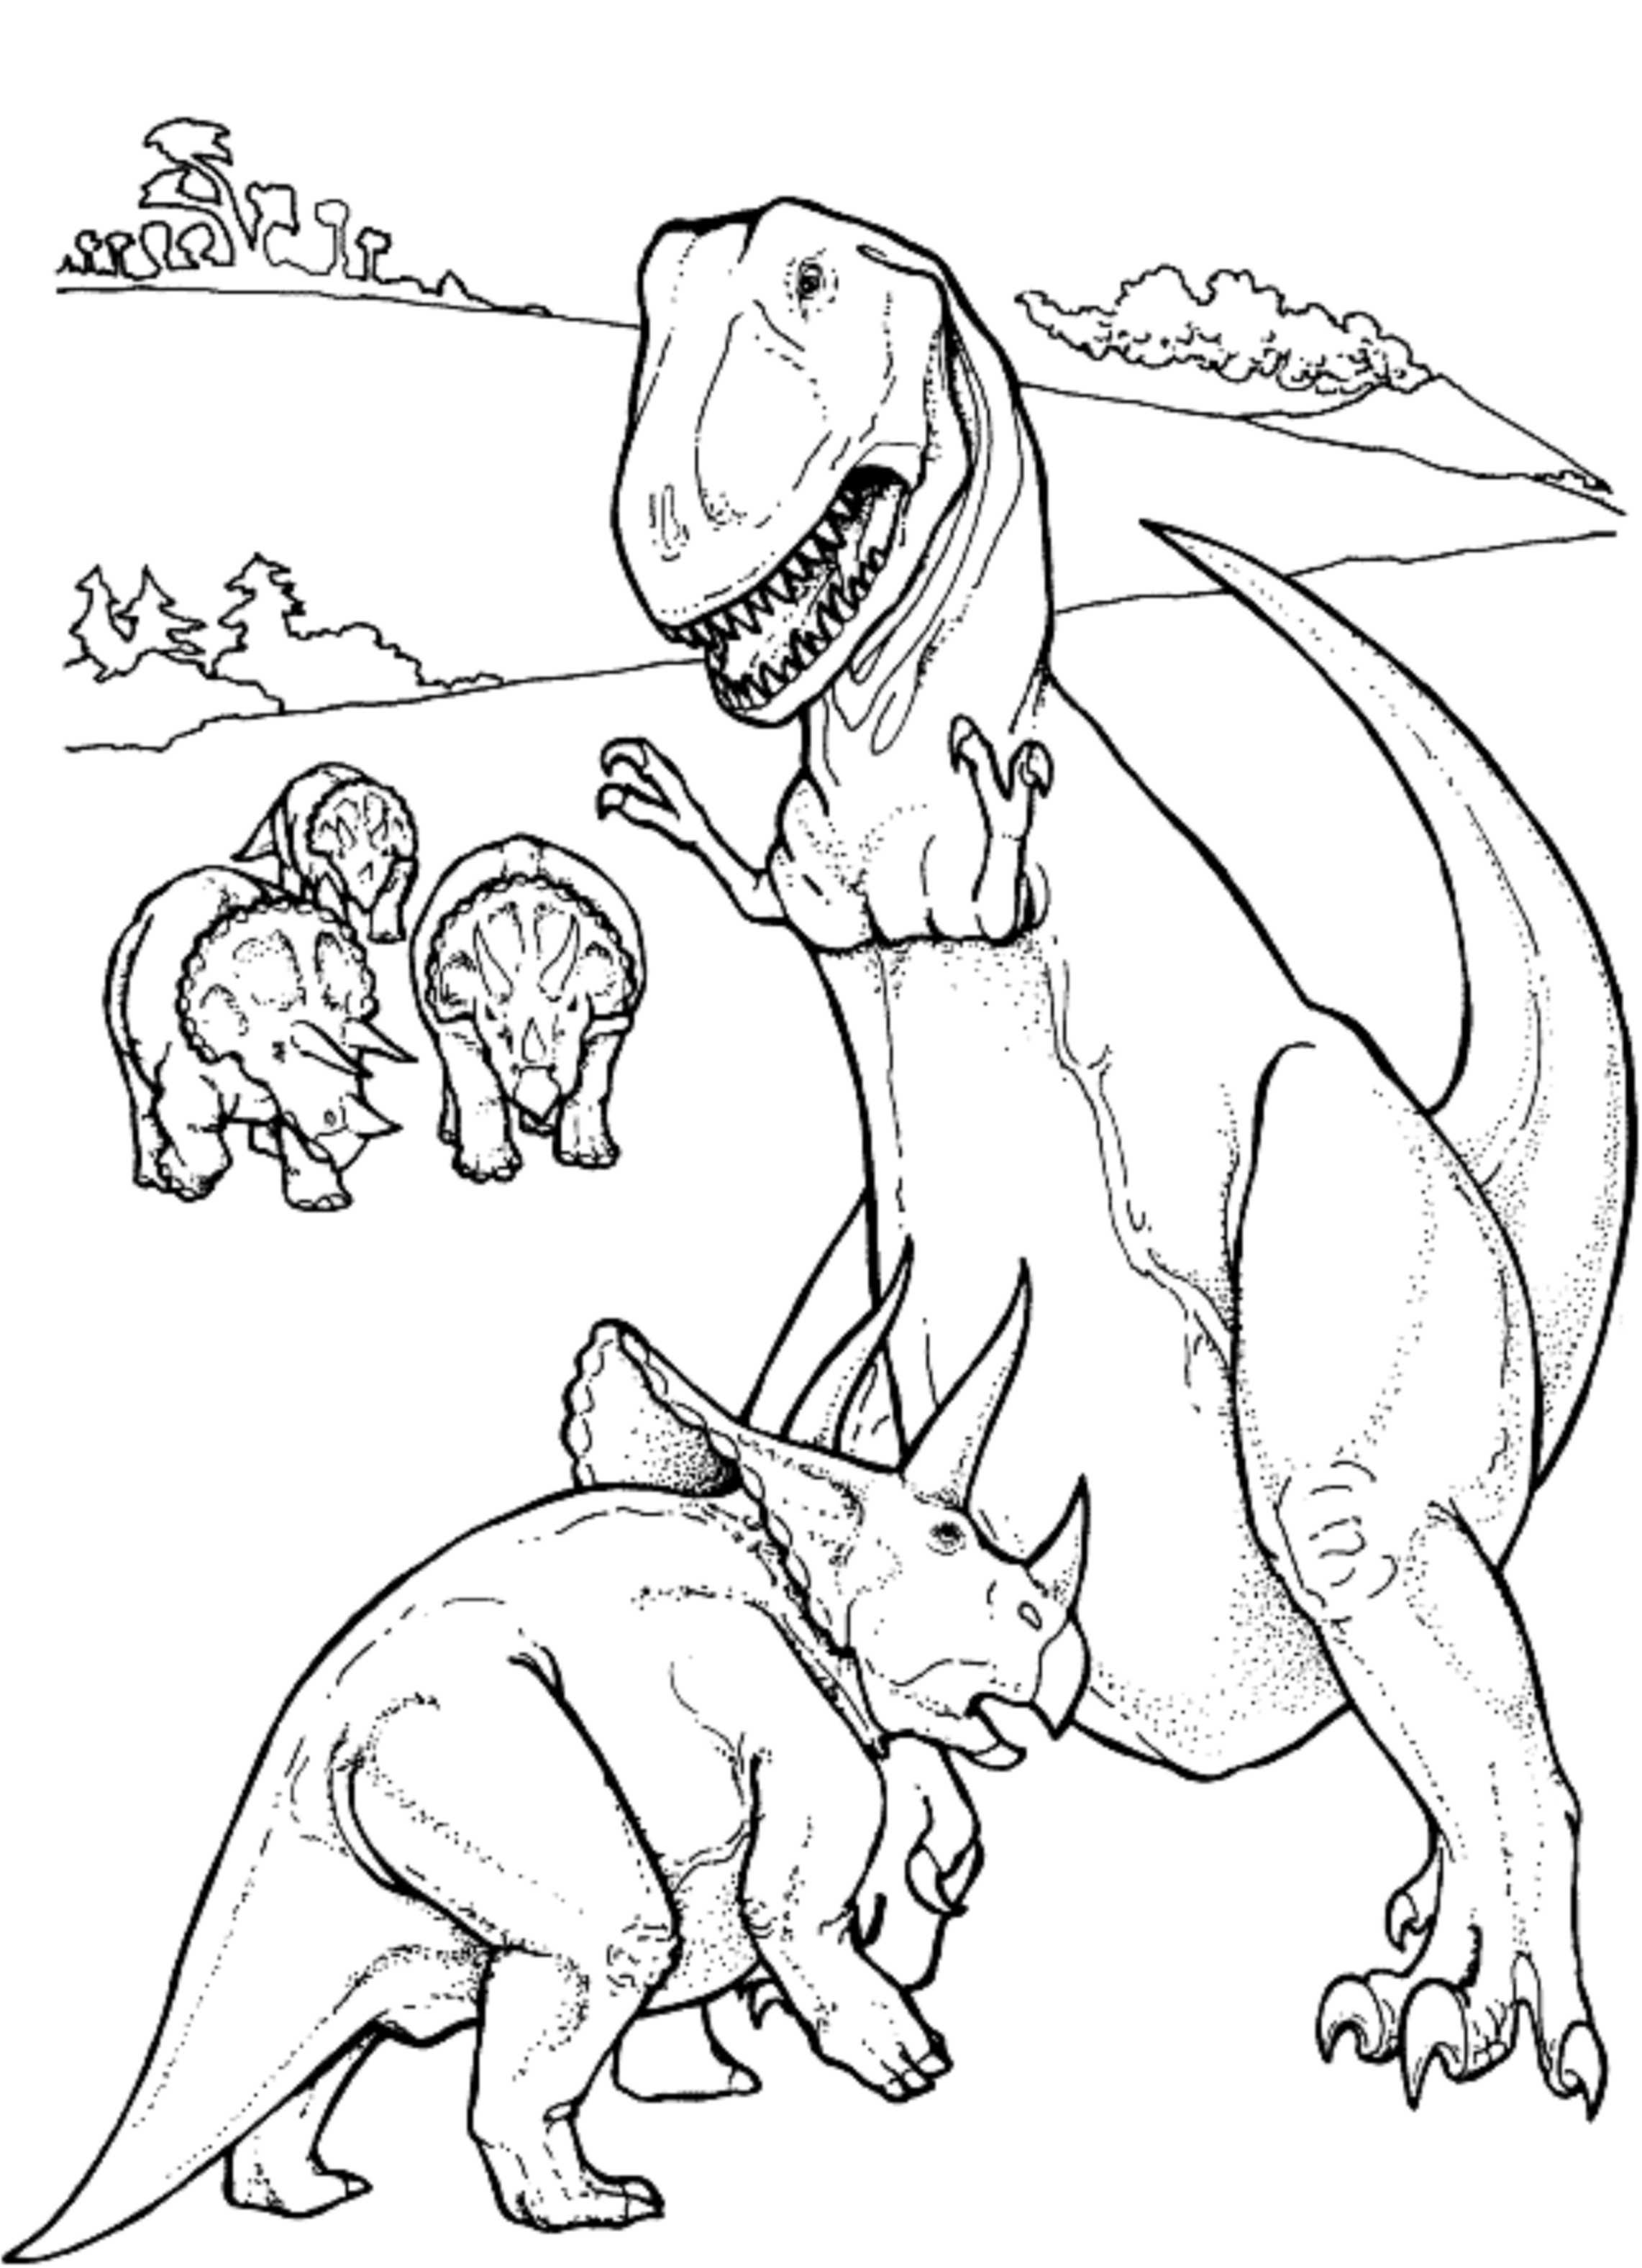 2283x3154 Triceratop Vs T Rex Dinosaur Coloring Pages Kids Colouring Pages